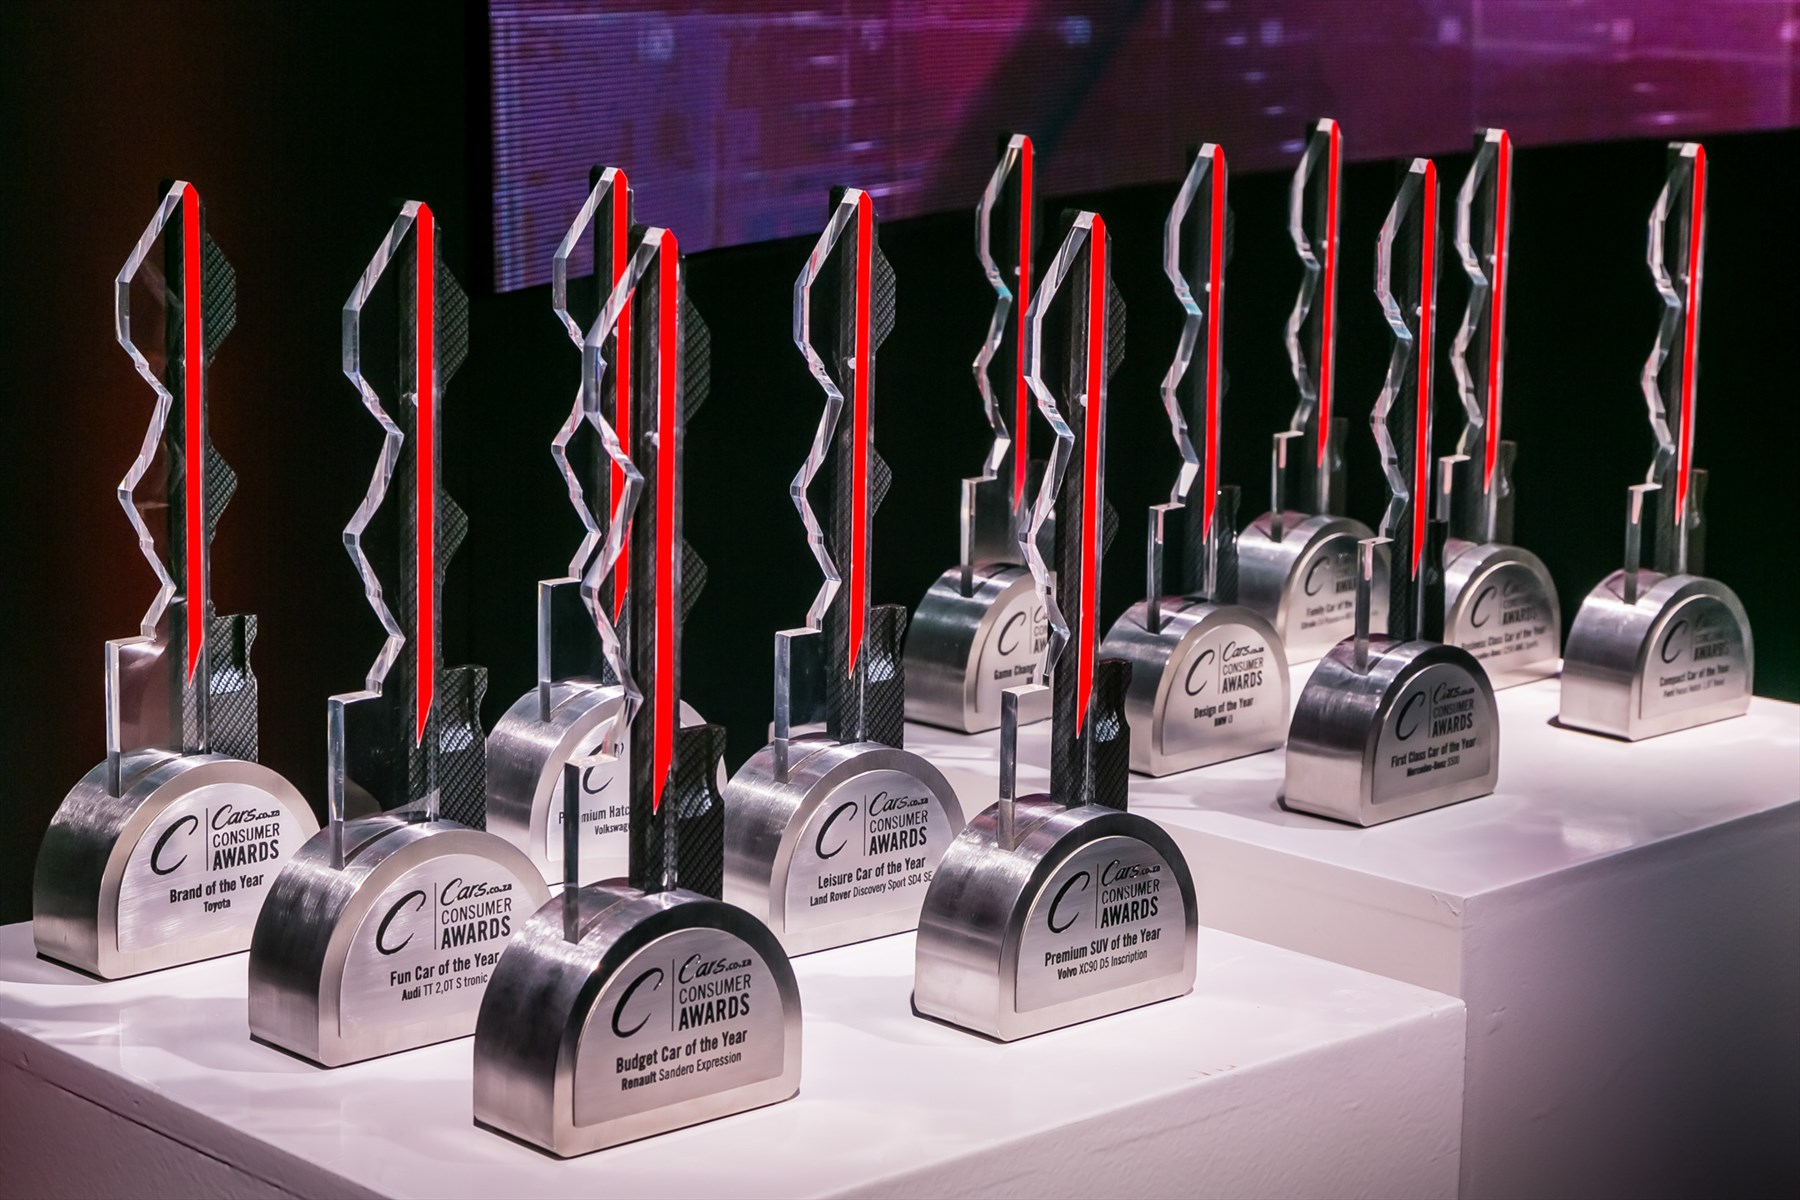 cars-awards-trophies_1800x1800